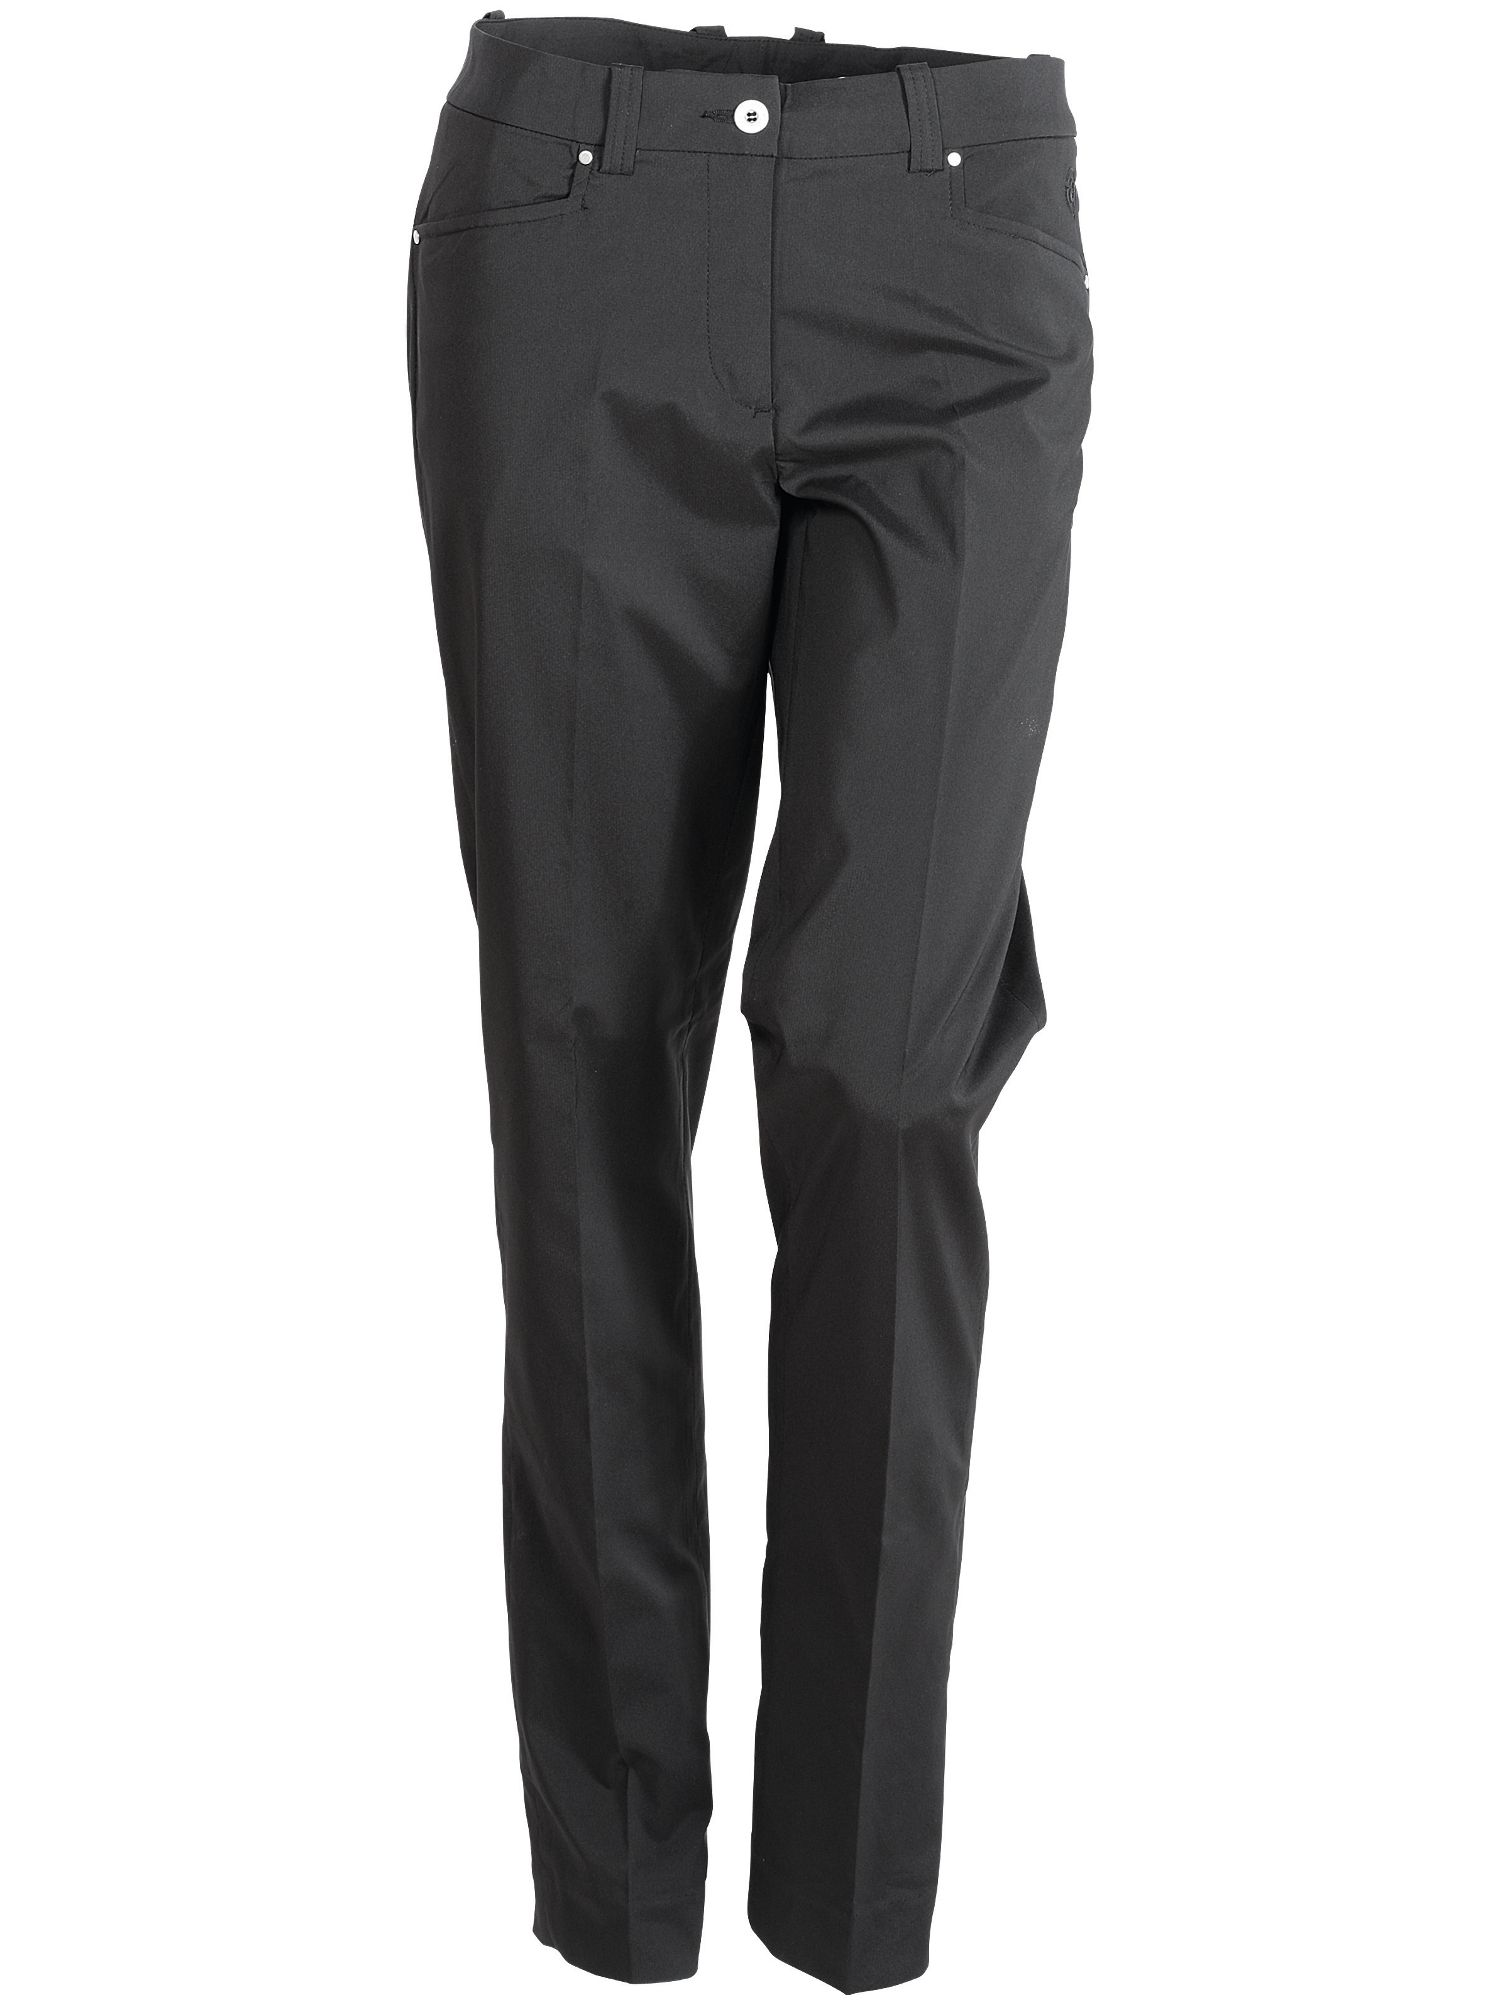 Abacus Cleek Trousers, Black